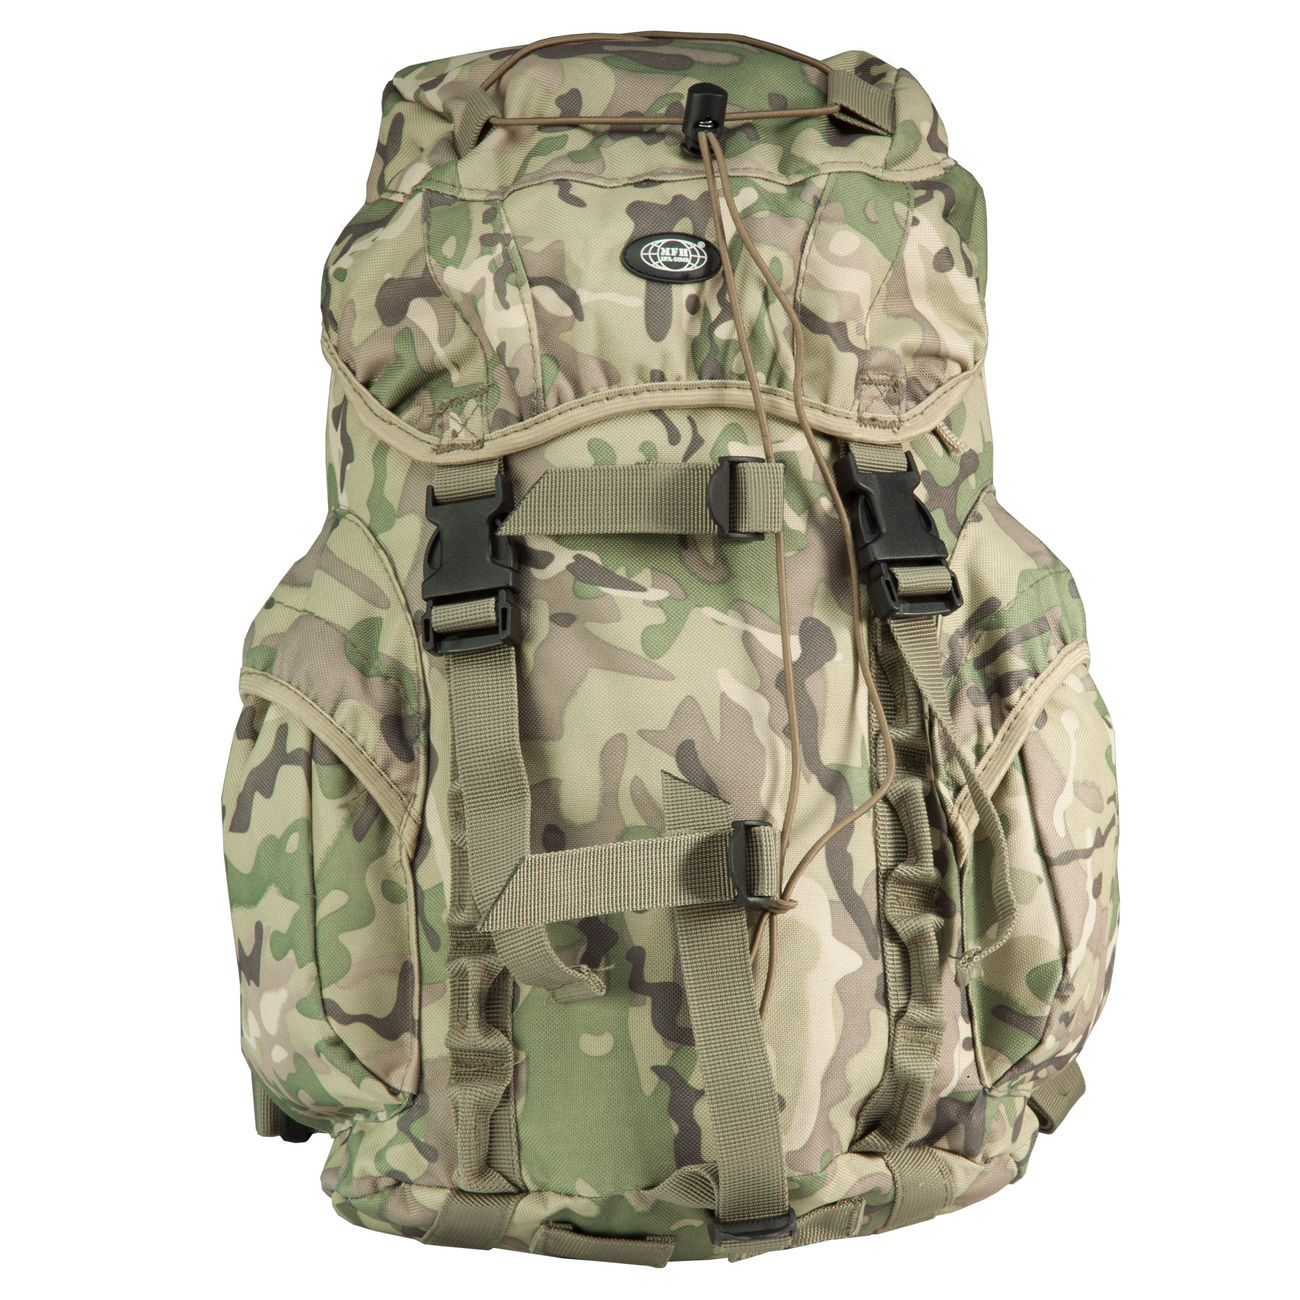 MFH Rucksack Recon I operation camo 1